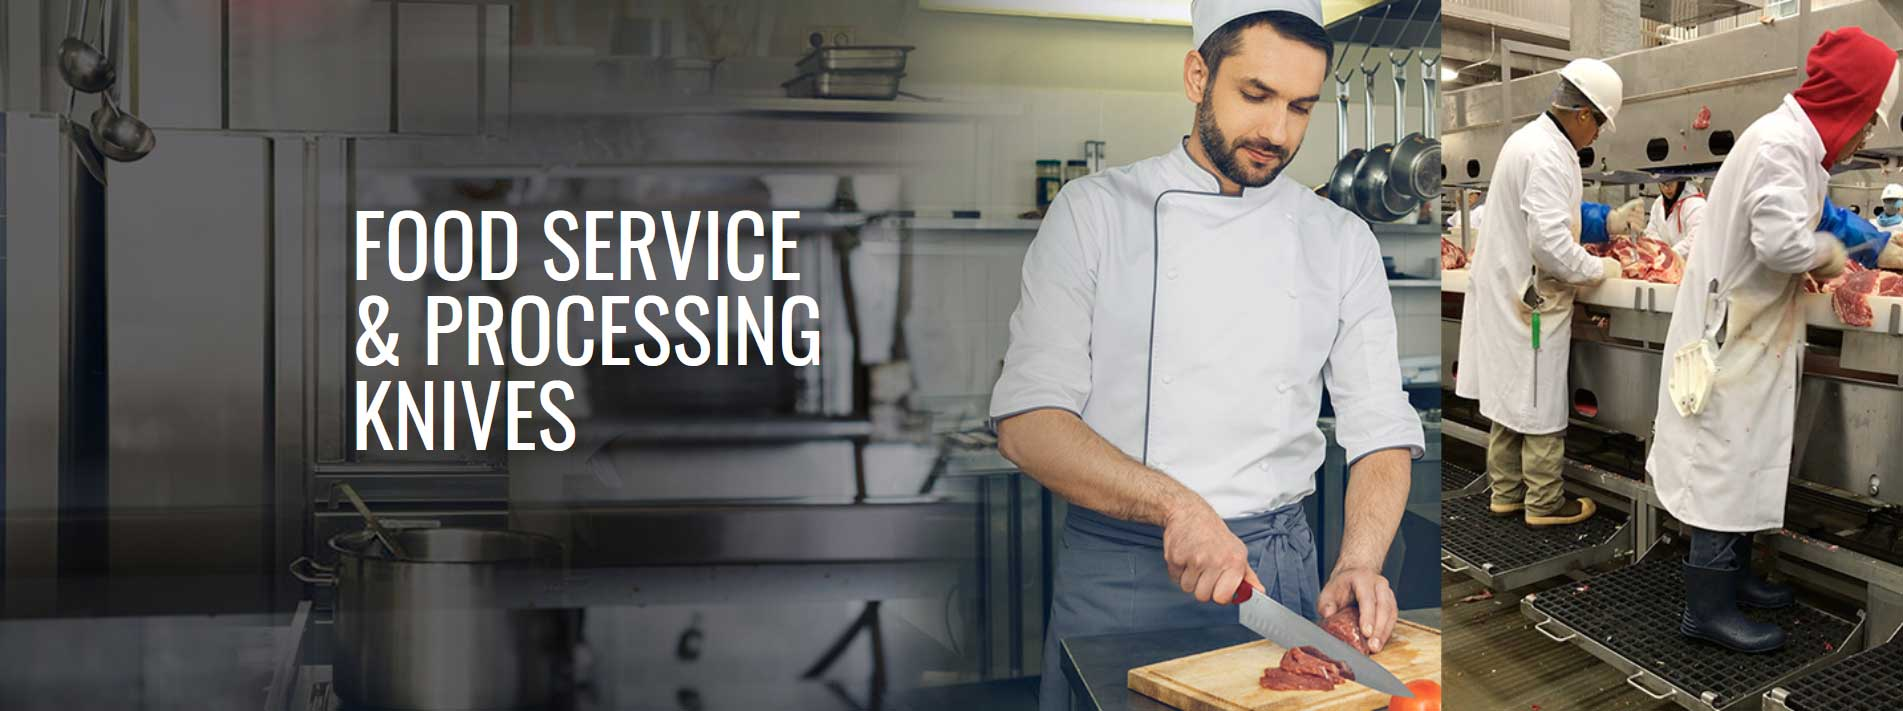 Food service & processing knives